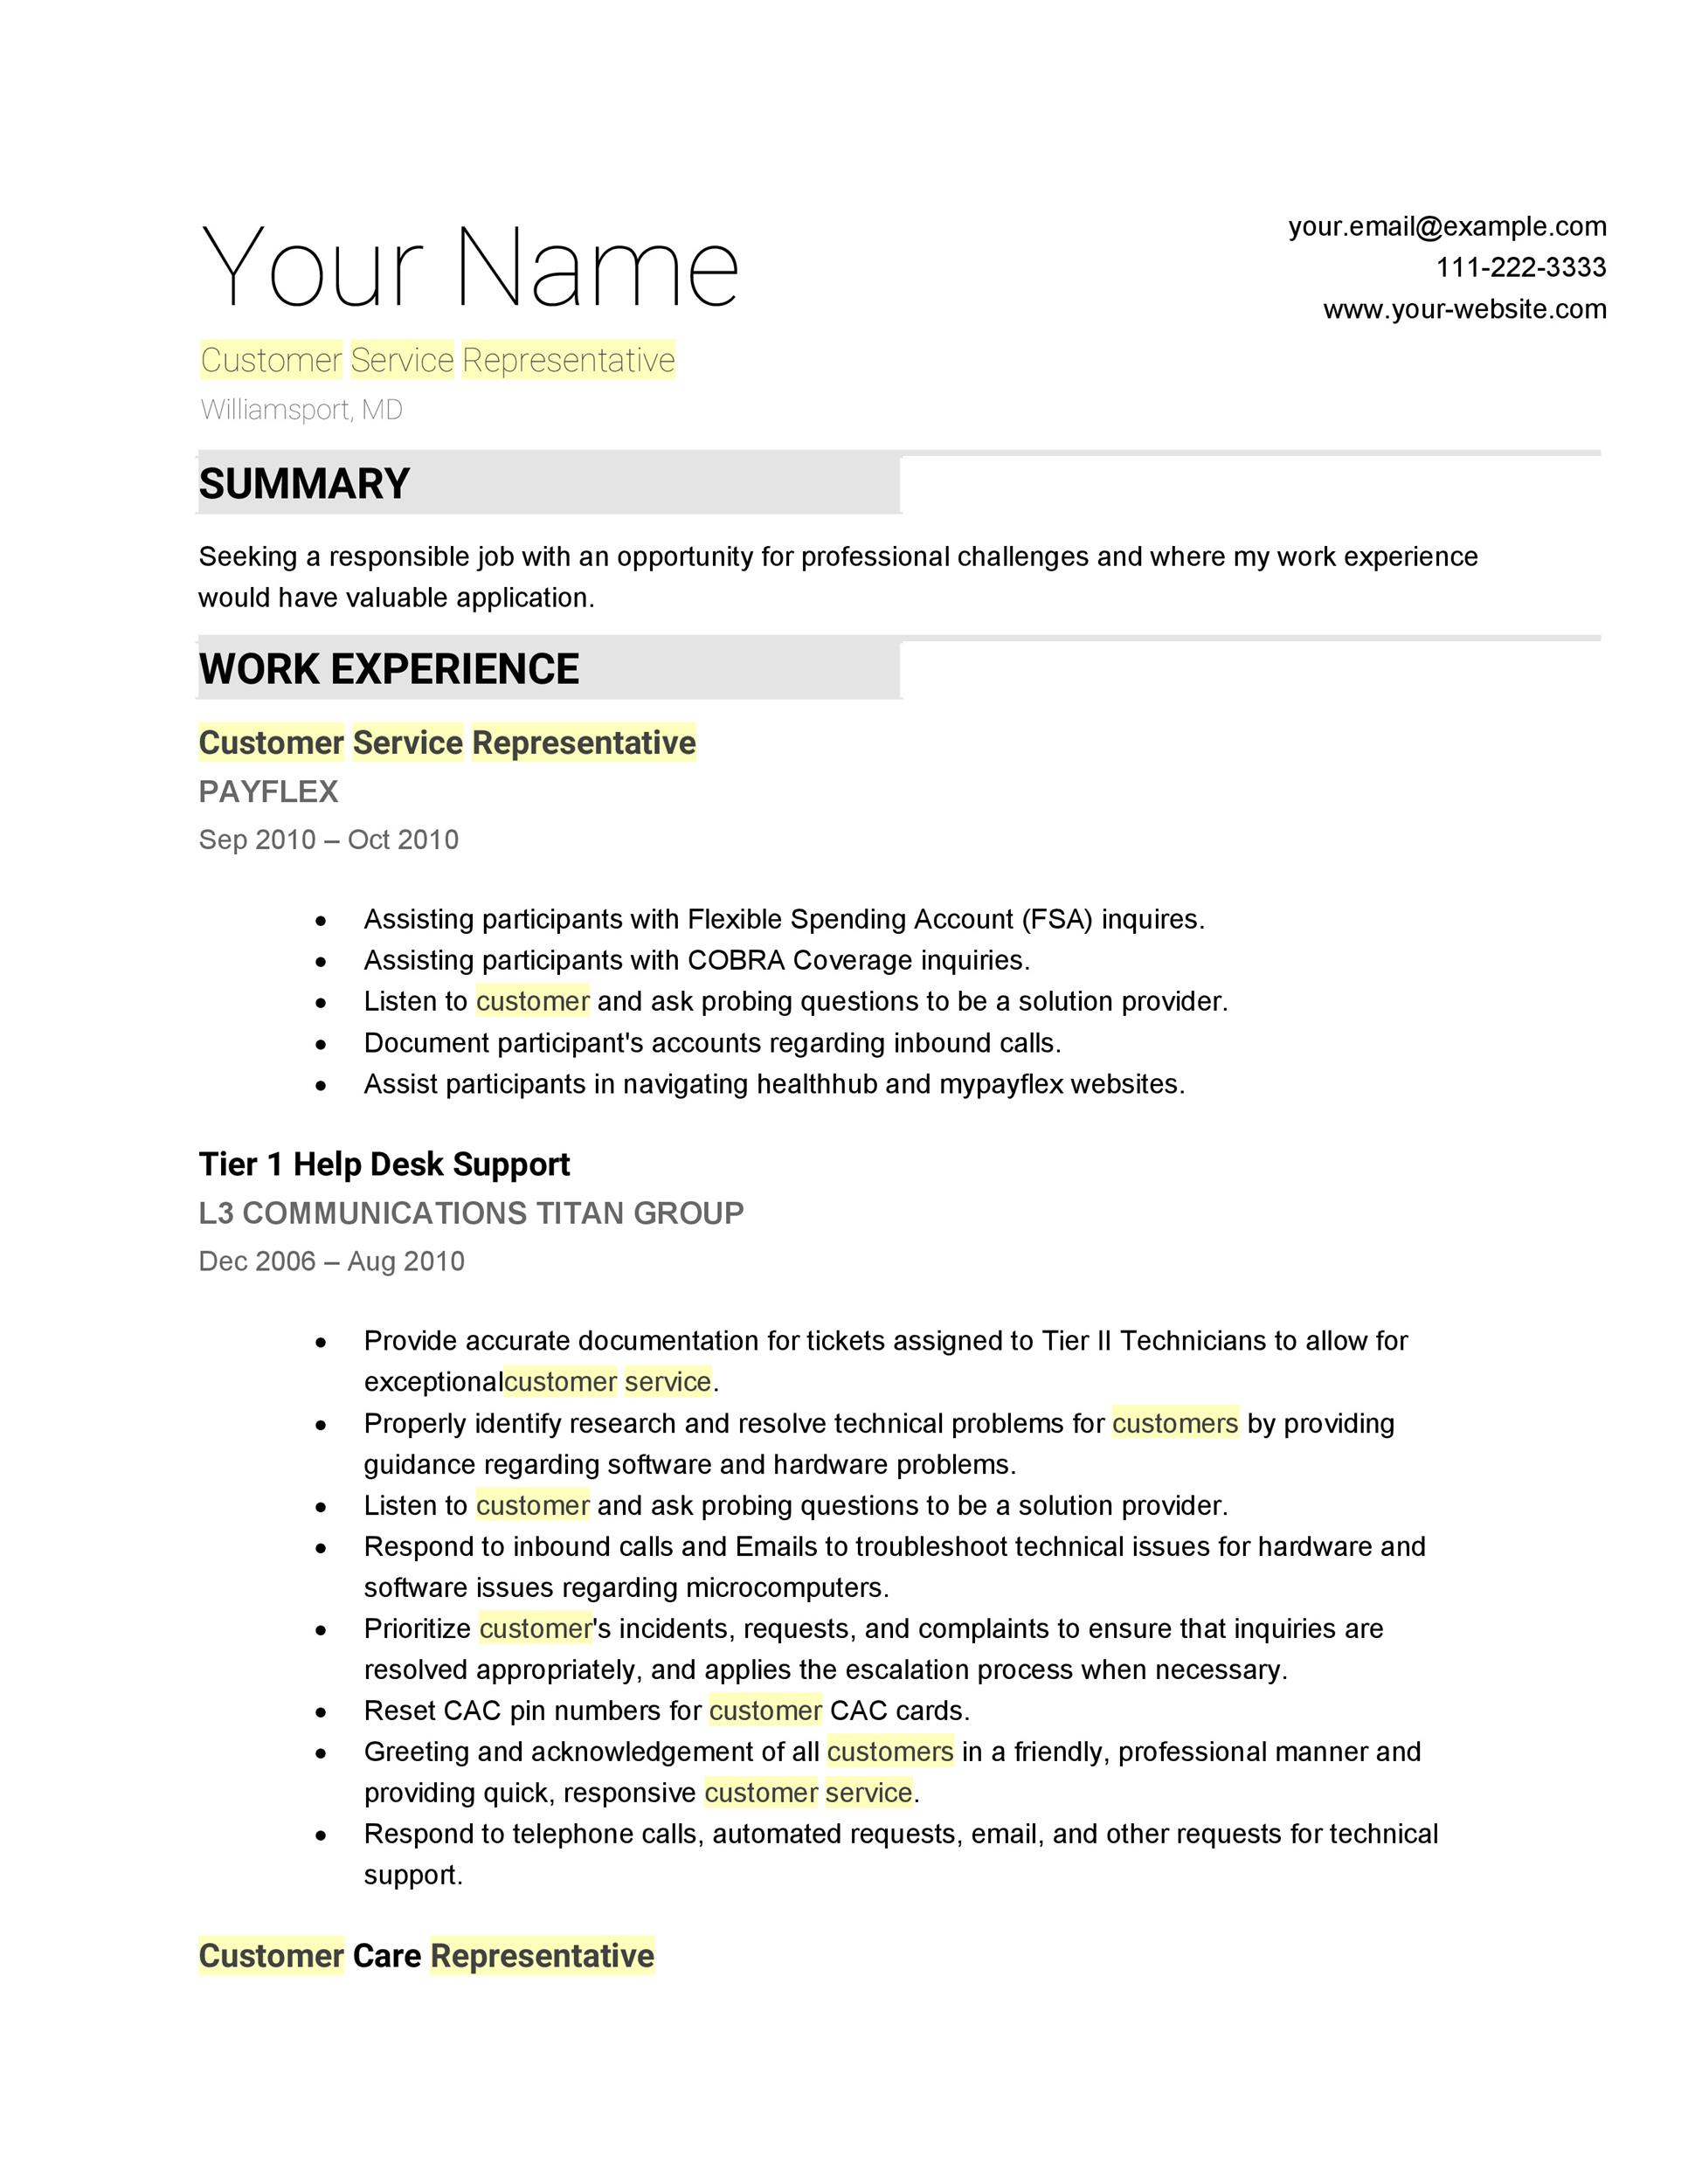 30  customer service resume examples  u1405 template lab